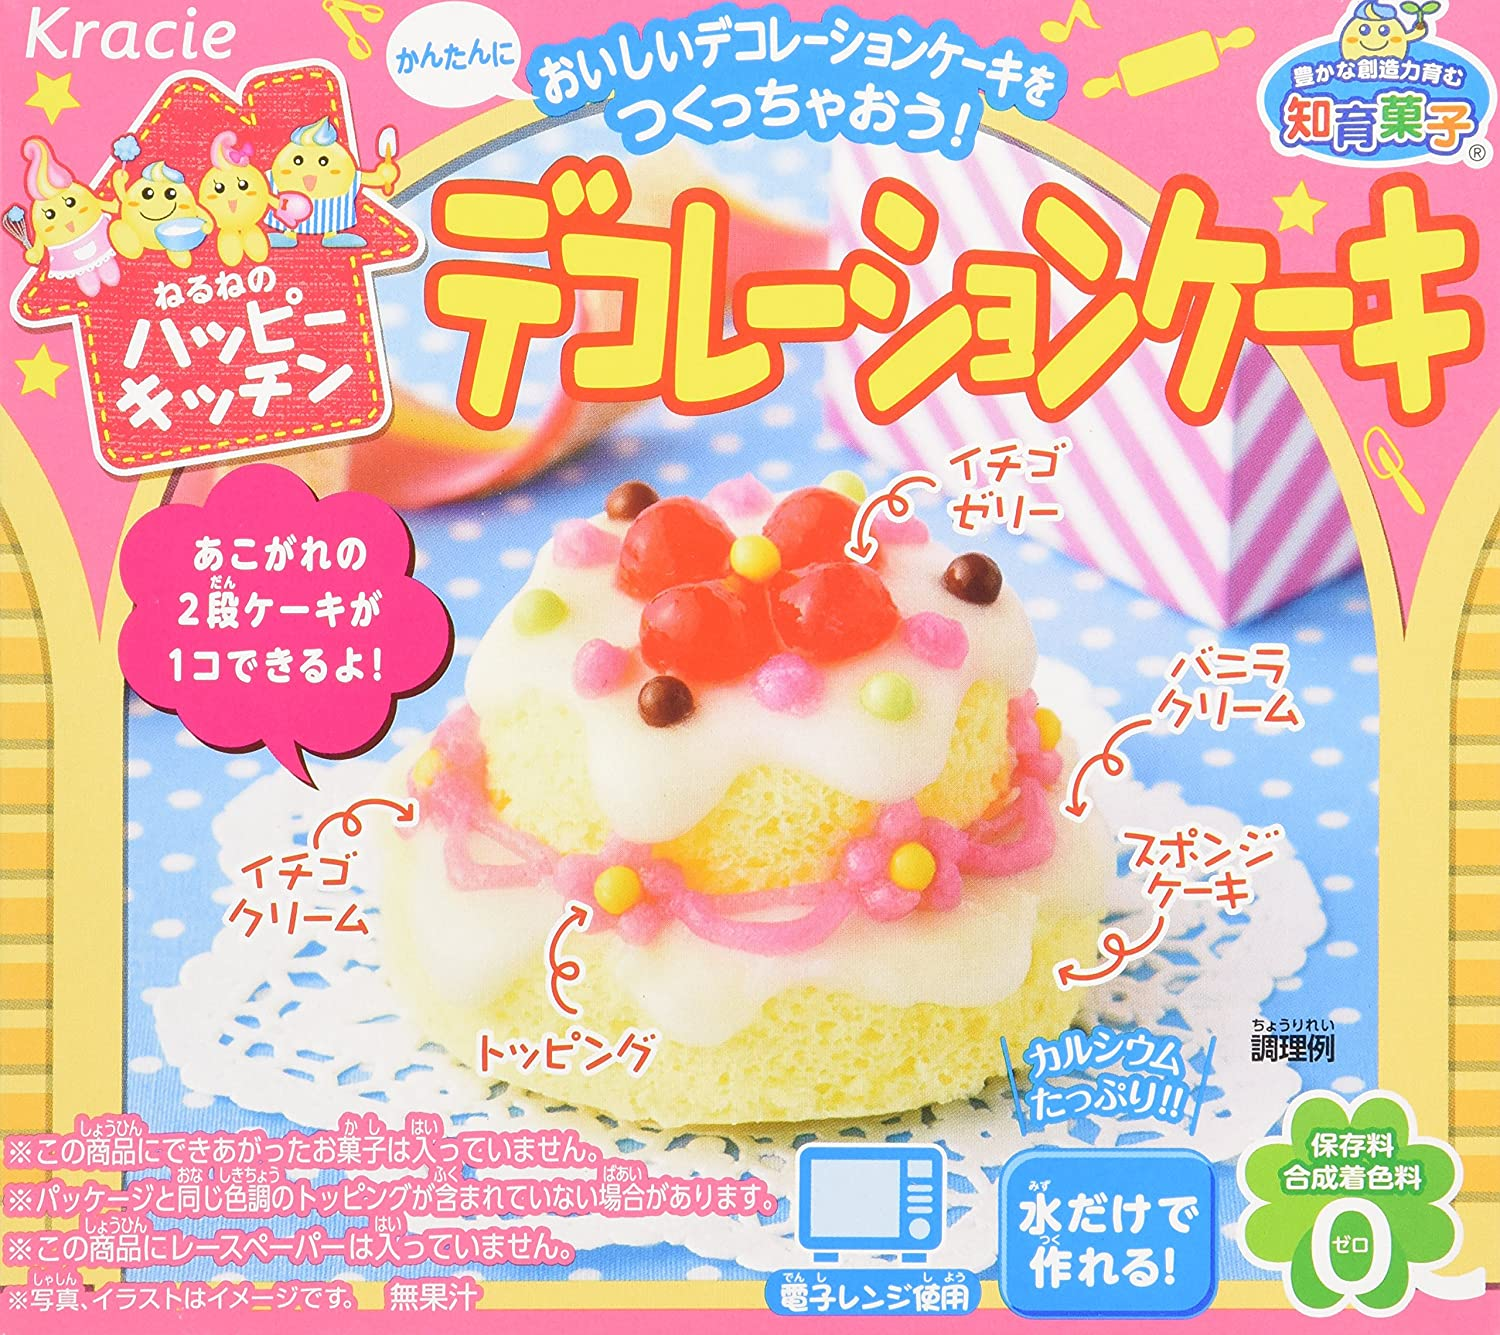 Popin cookin amazon - Amazon Com Cake Decoration Kit Popin Cookin Diy Candy Kracie Grocery Gourmet Food